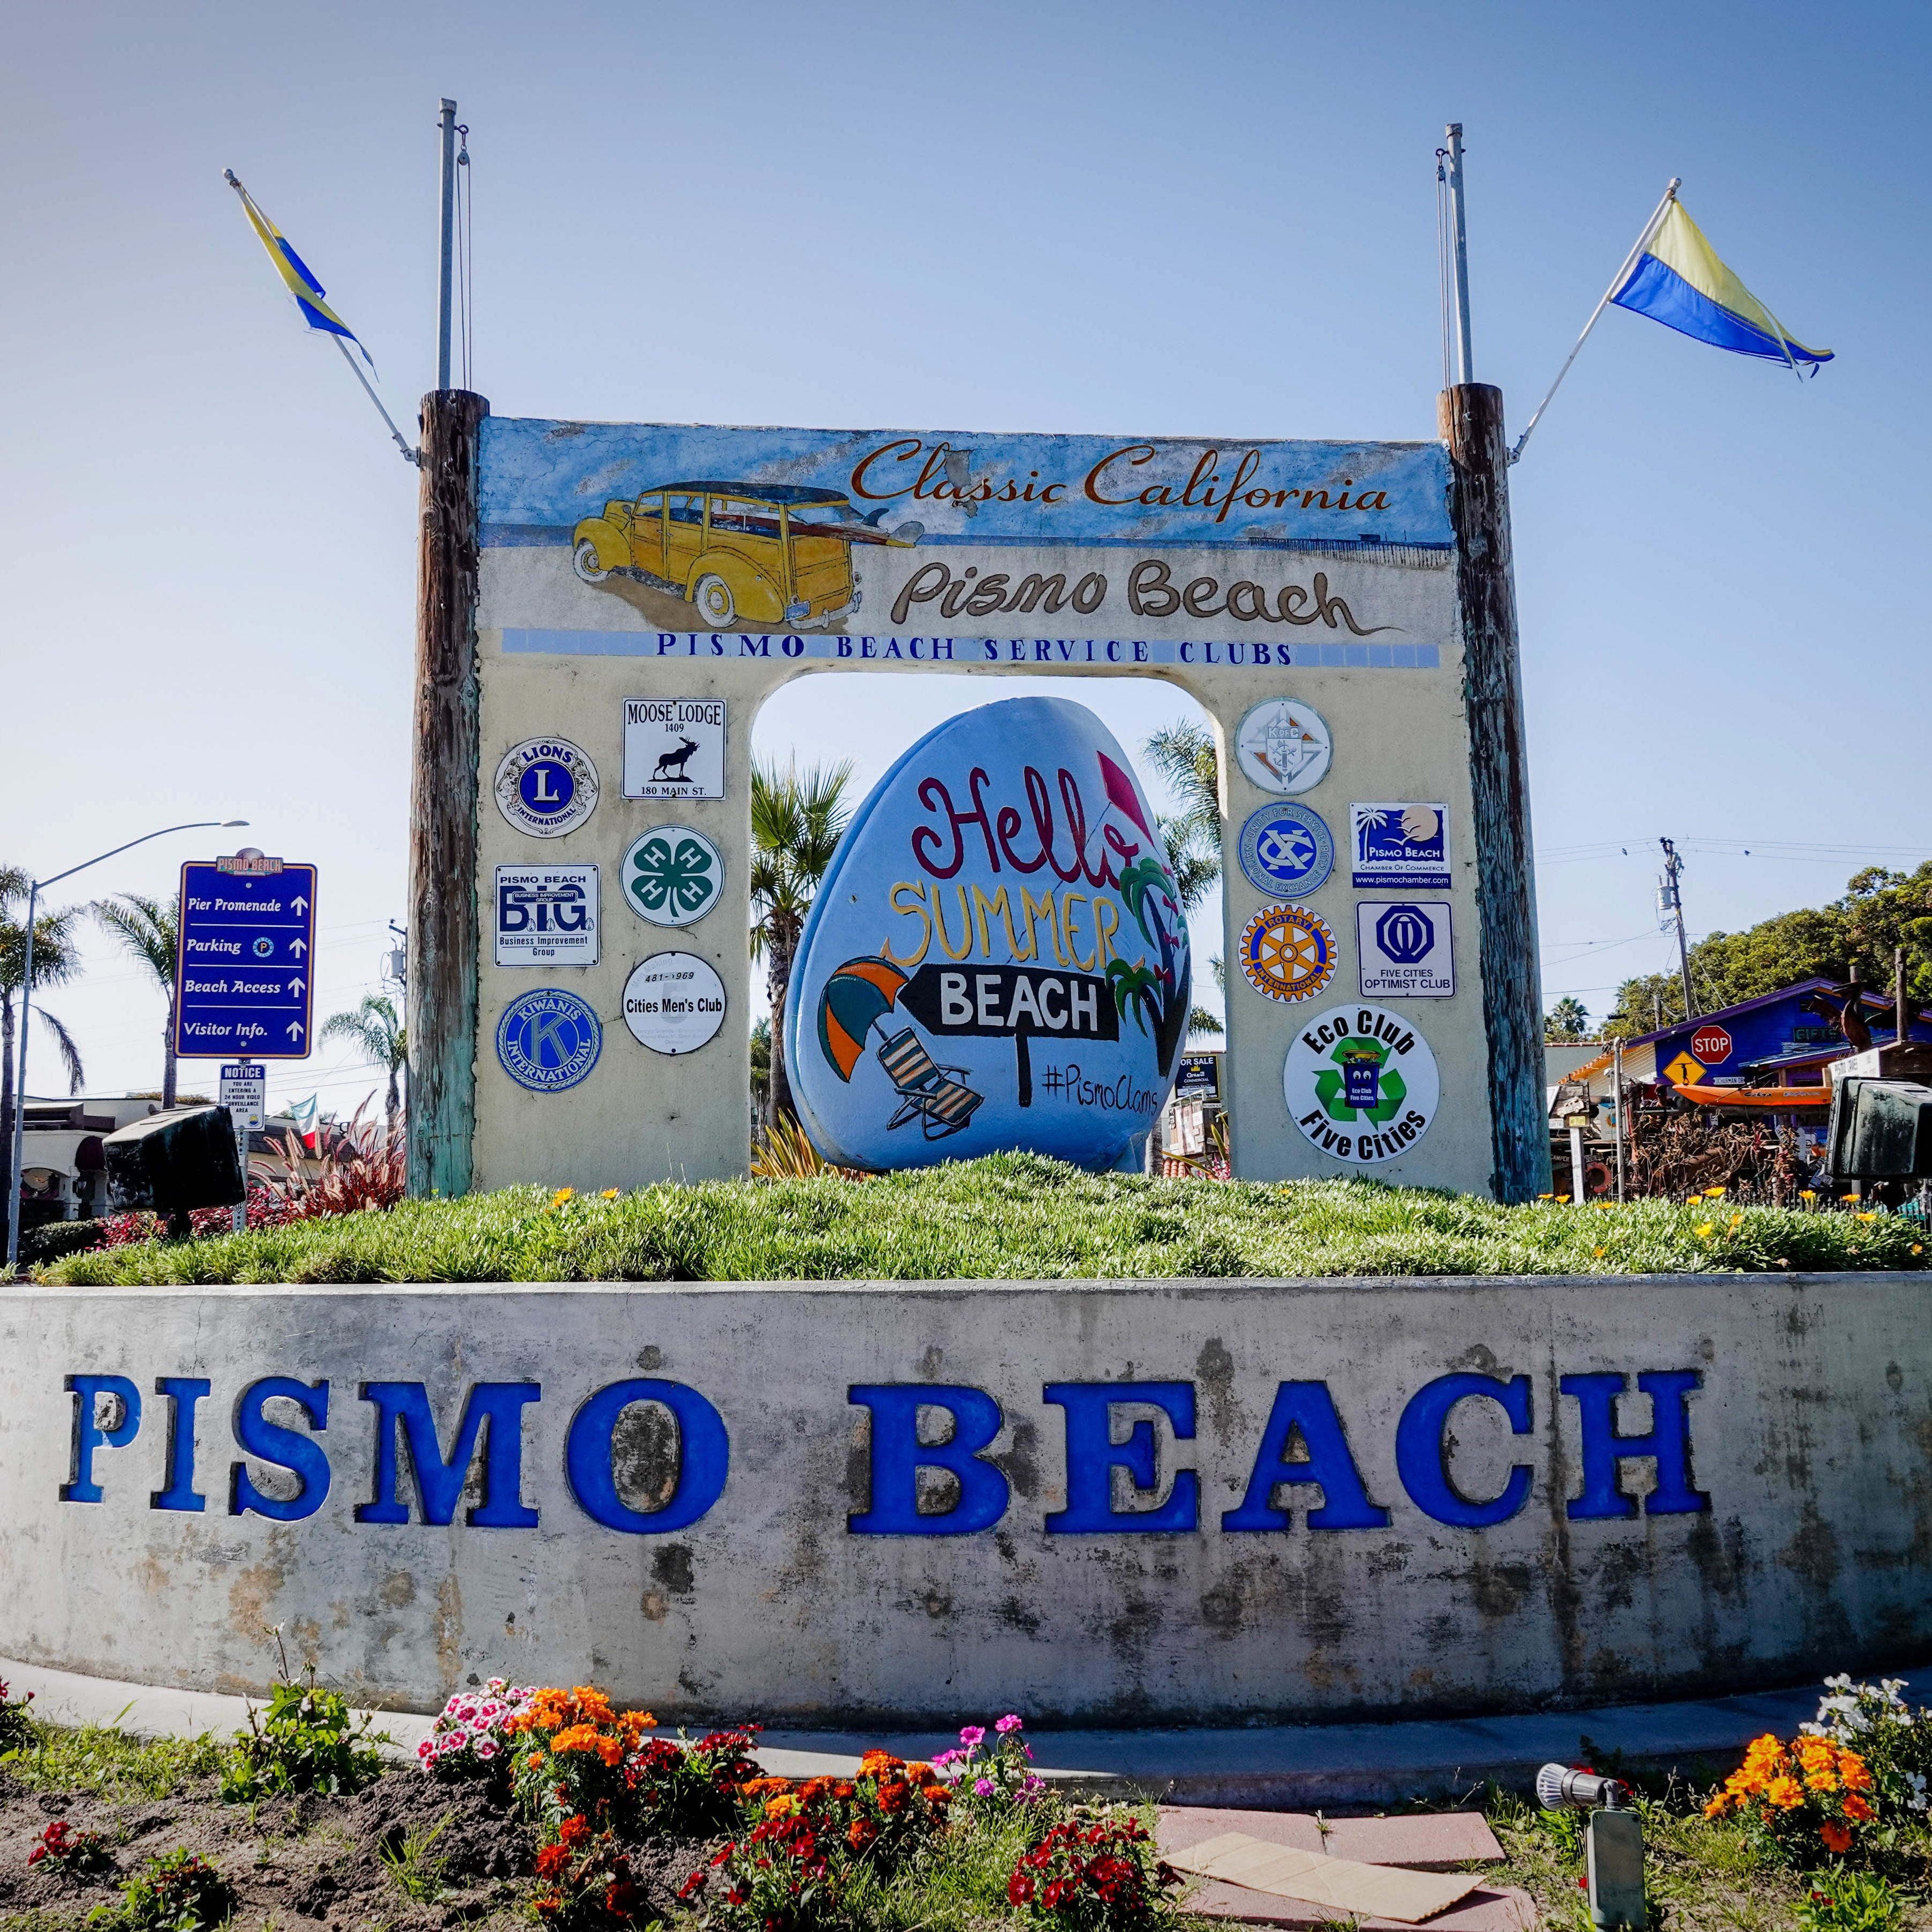 Welcome to Pismo Beach, the central California coastal town of 8,000 people, known for 18 miles of wide undeveloped coast, dramatic cliffs and caves and the ability to drive your car on the sand. Join us for a photo tour of Pismo Beach.